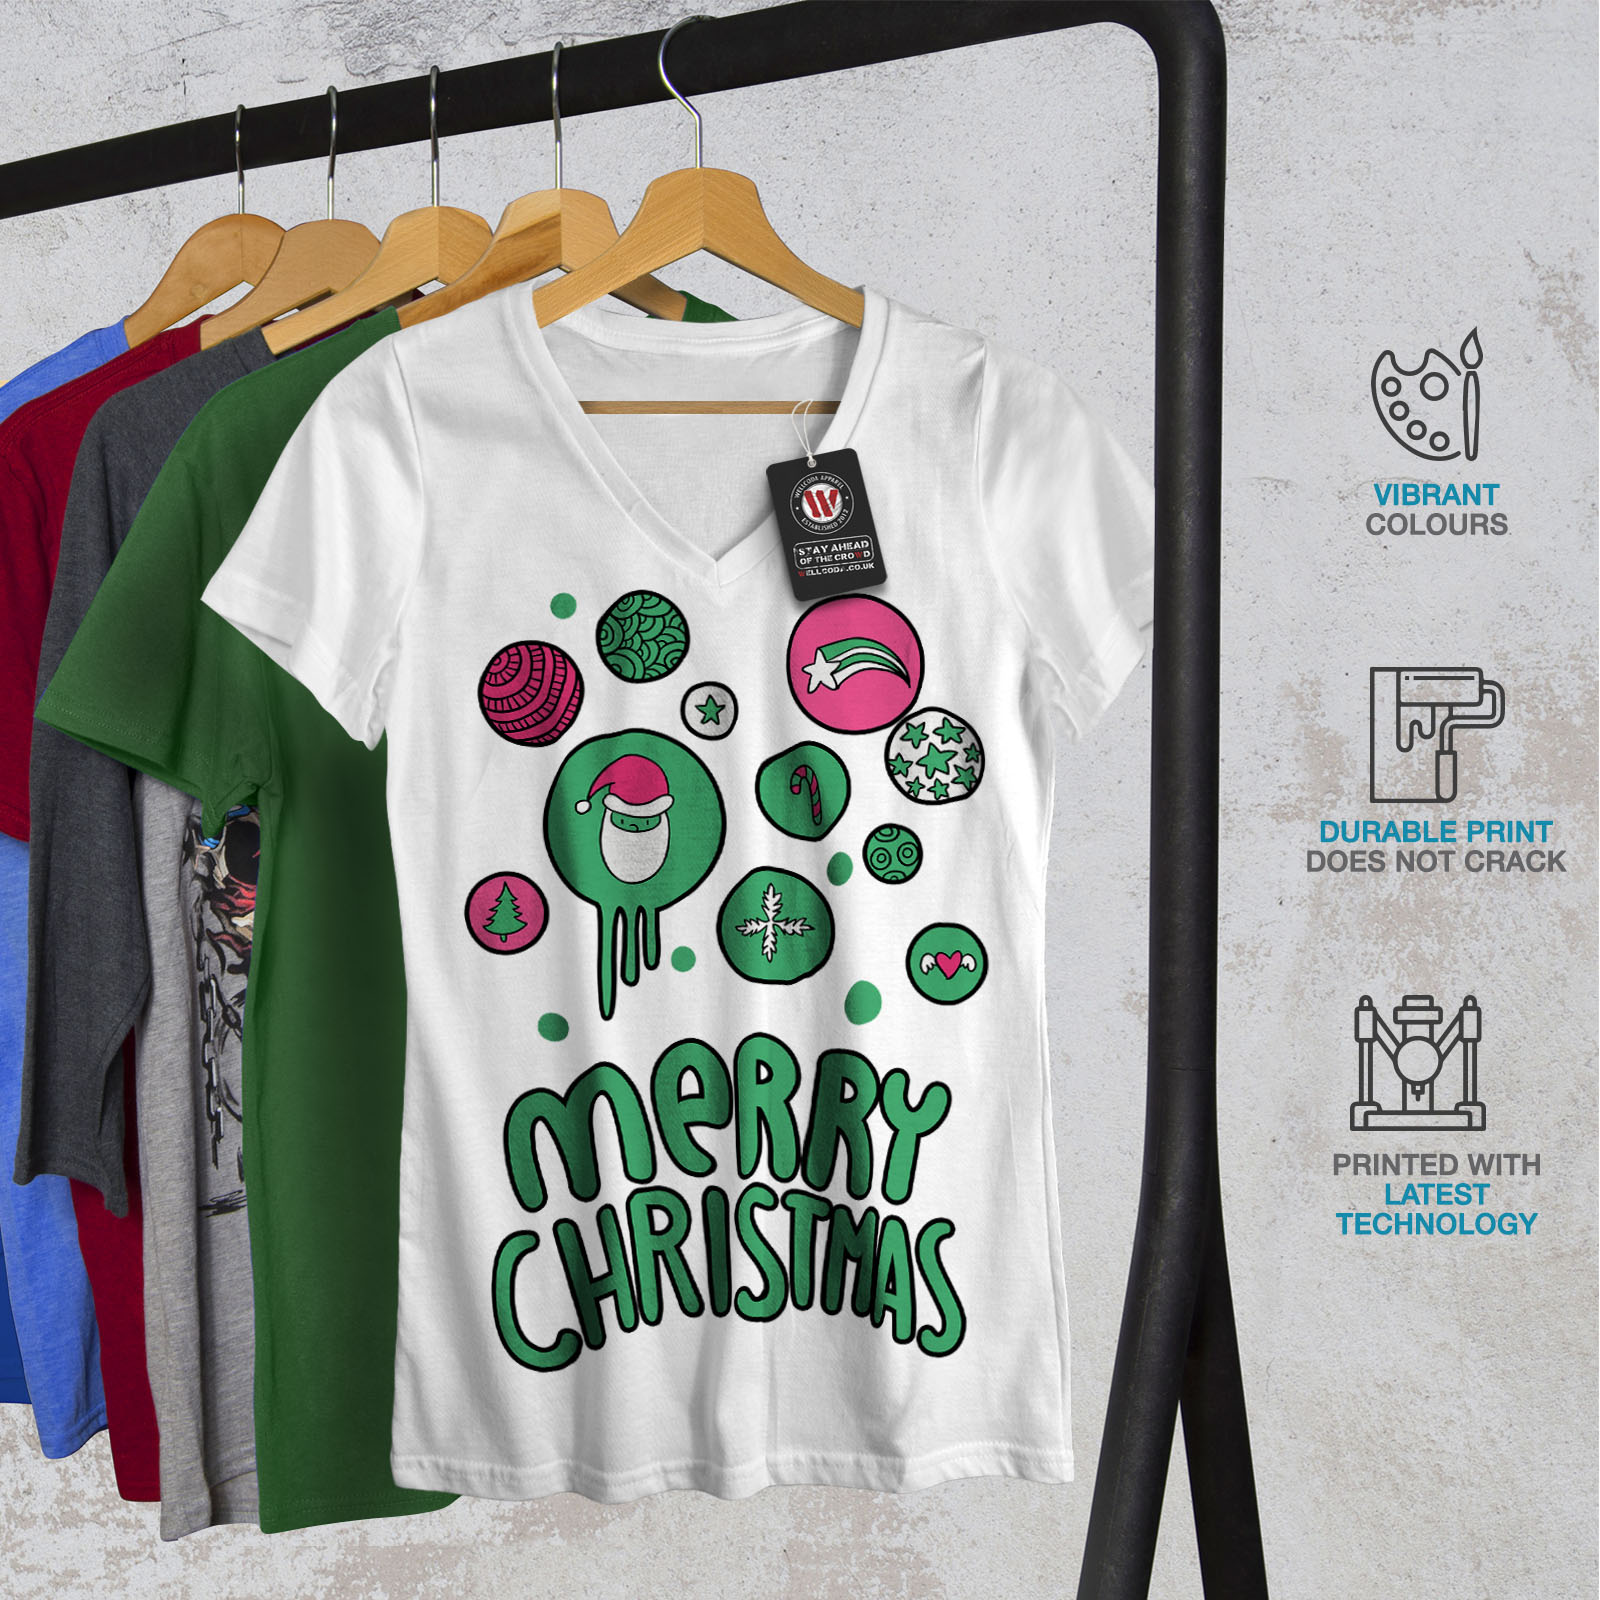 Wellcoda-Merry-Christmas-Fun-Womens-V-Neck-T-shirt-Holiday-Graphic-Design-Tee thumbnail 8